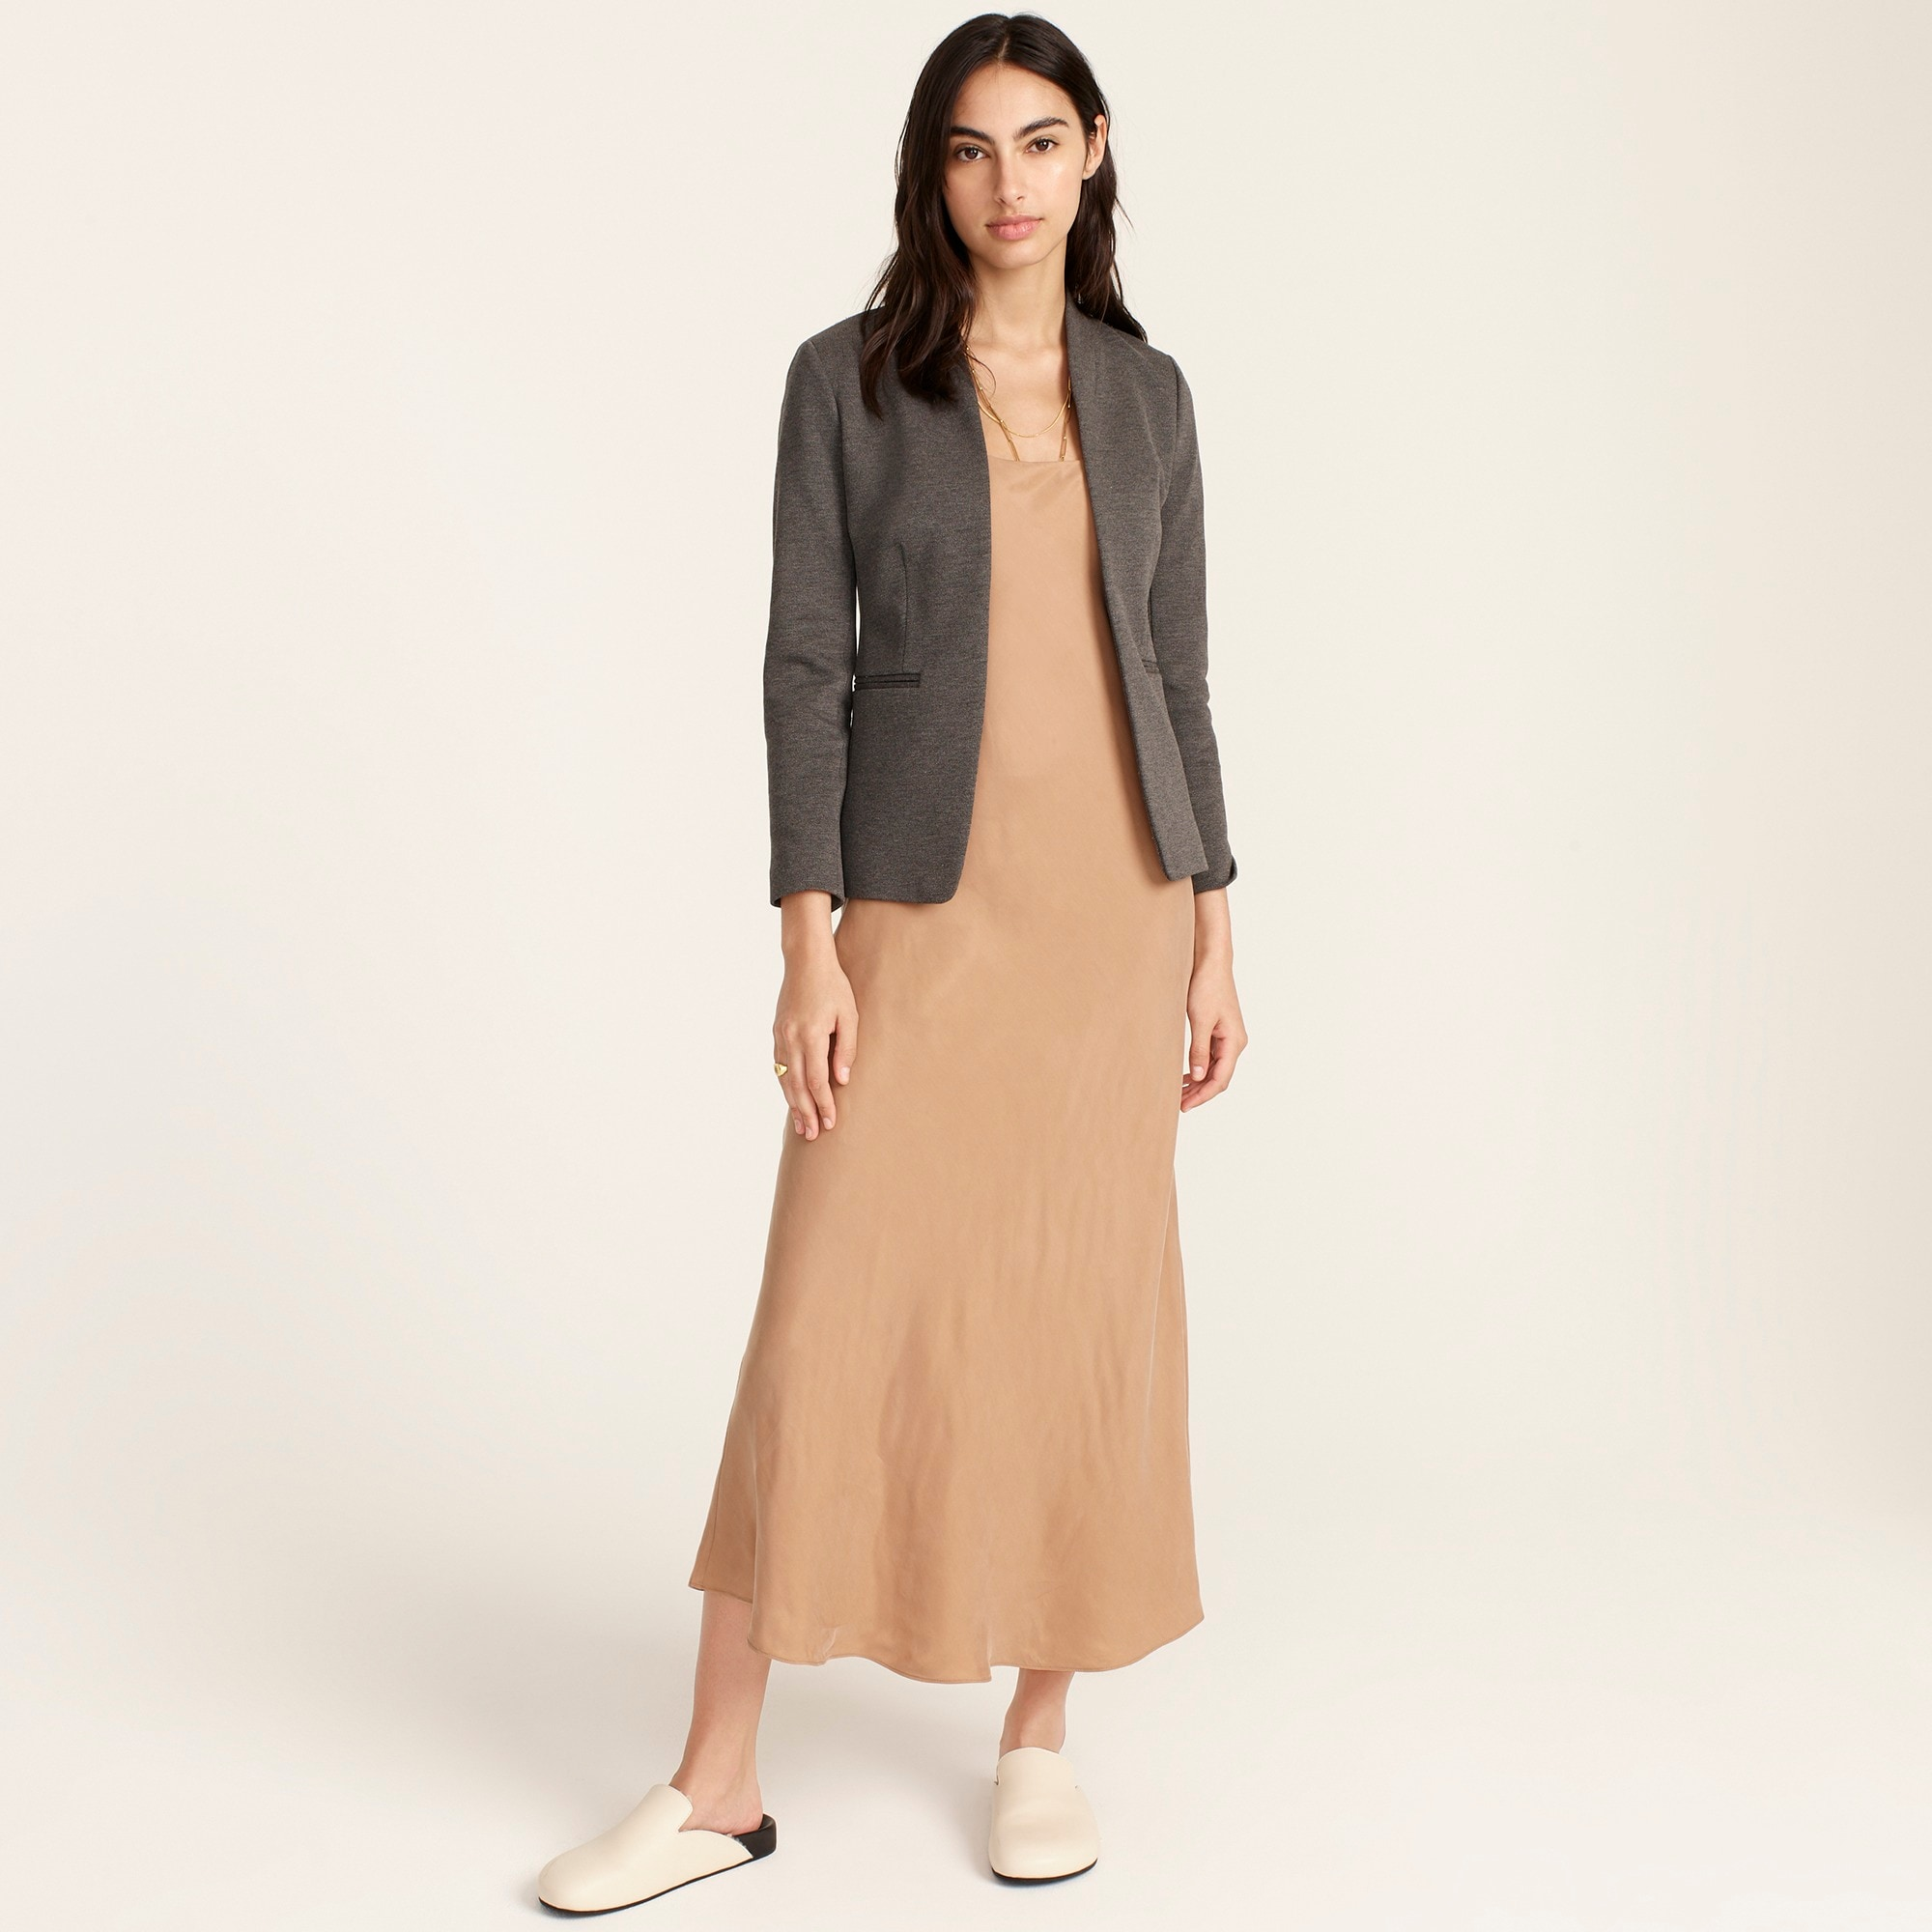 Going-out blazer women suiting c